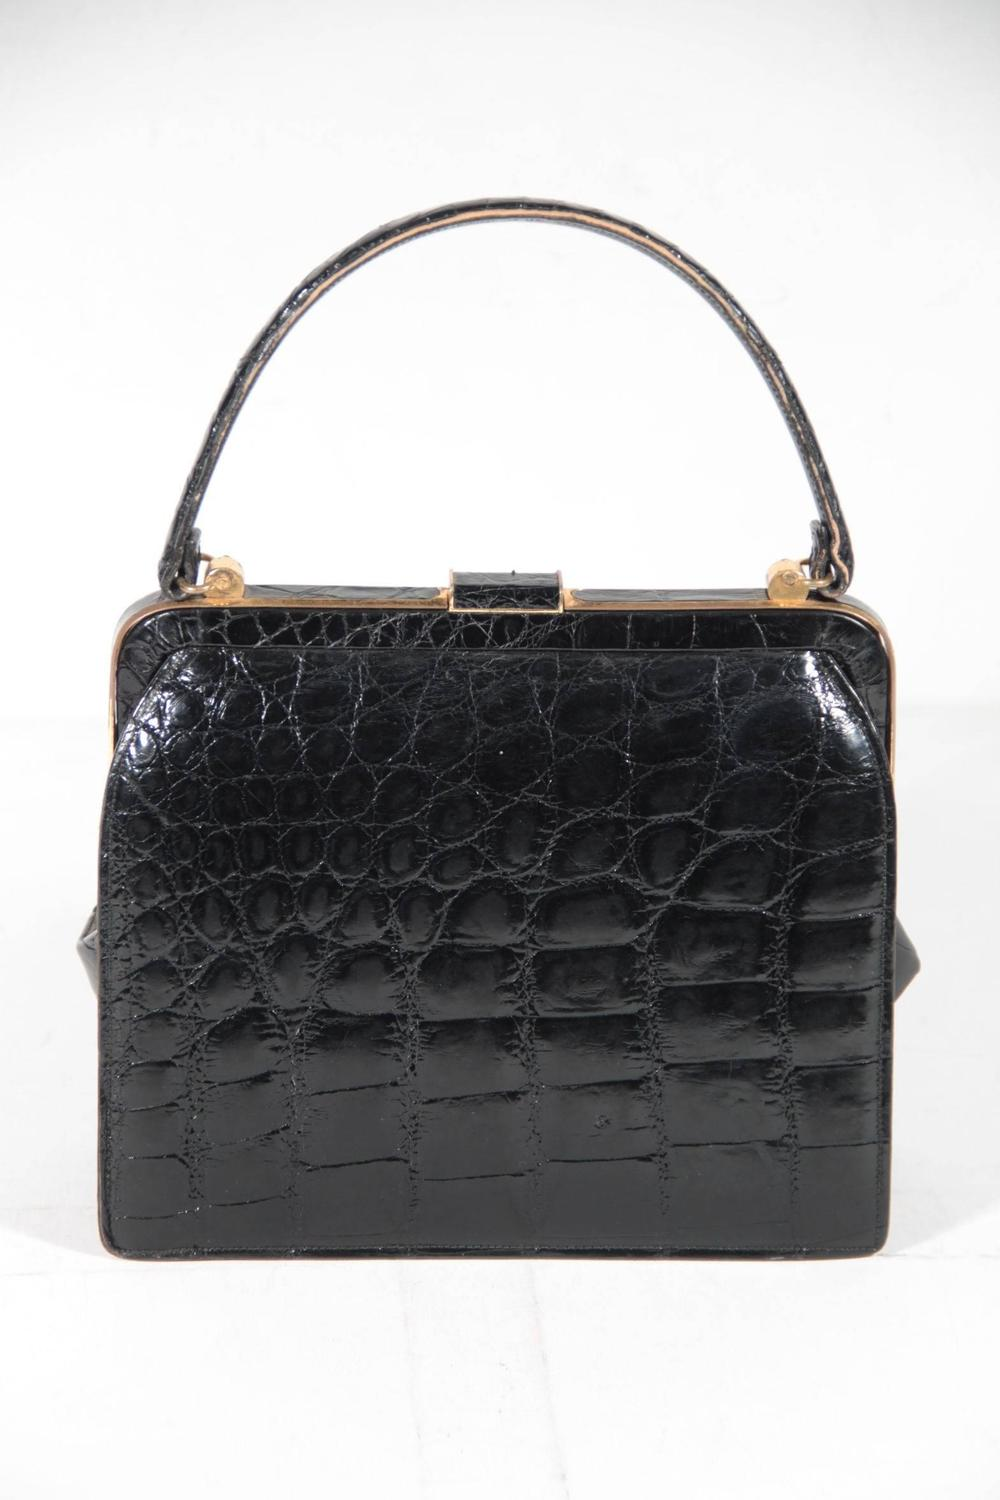 You searched for: crocodile purse! Etsy is the home to thousands of handmade, vintage, and one-of-a-kind products and gifts related to your search. No matter what you're looking for or where you are in the world, our global marketplace of sellers can help you find unique and affordable options.